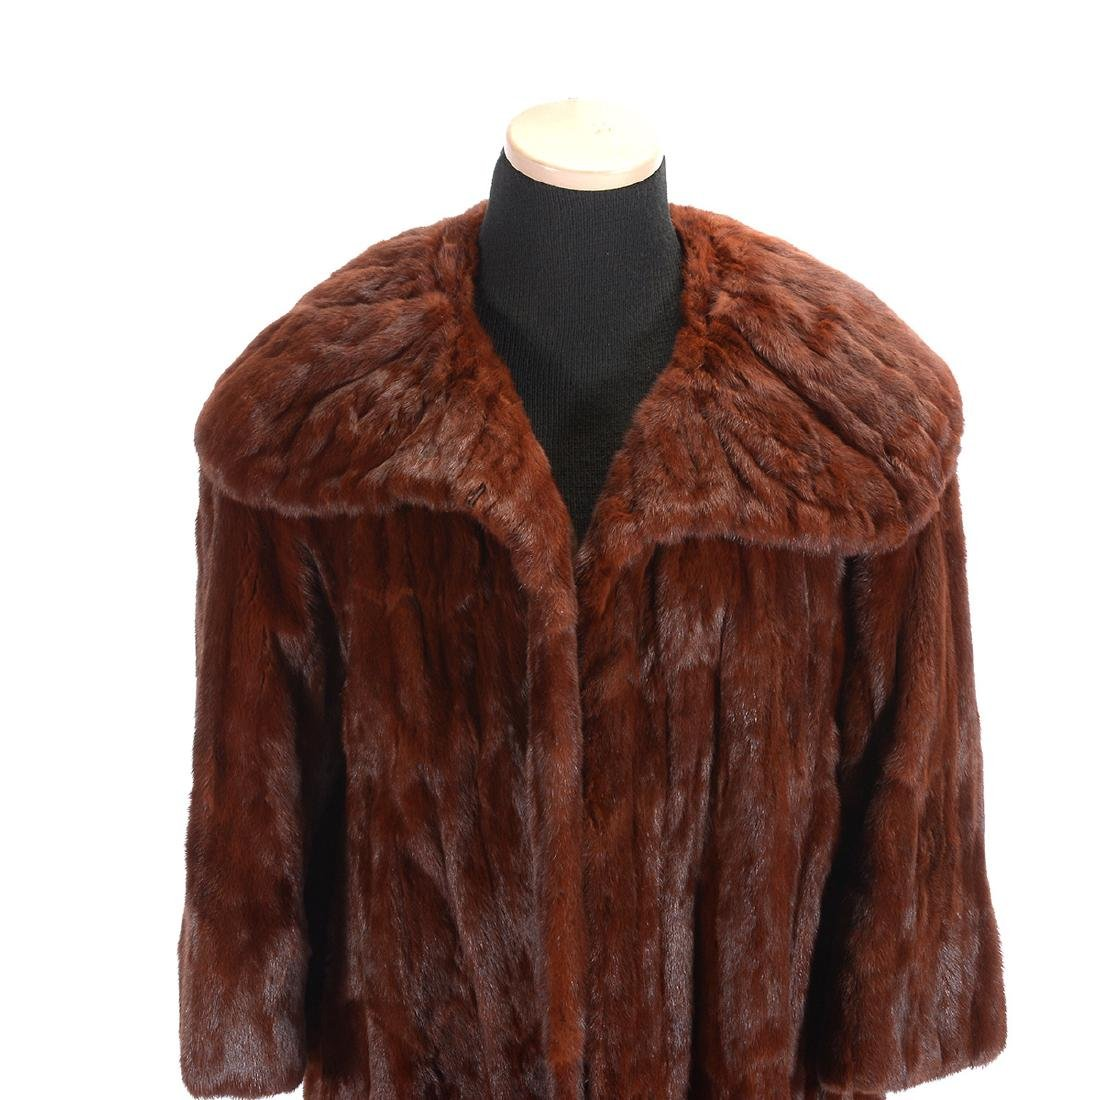 Full Length Sable Coat with Wide 'Lapel' Collar - 2